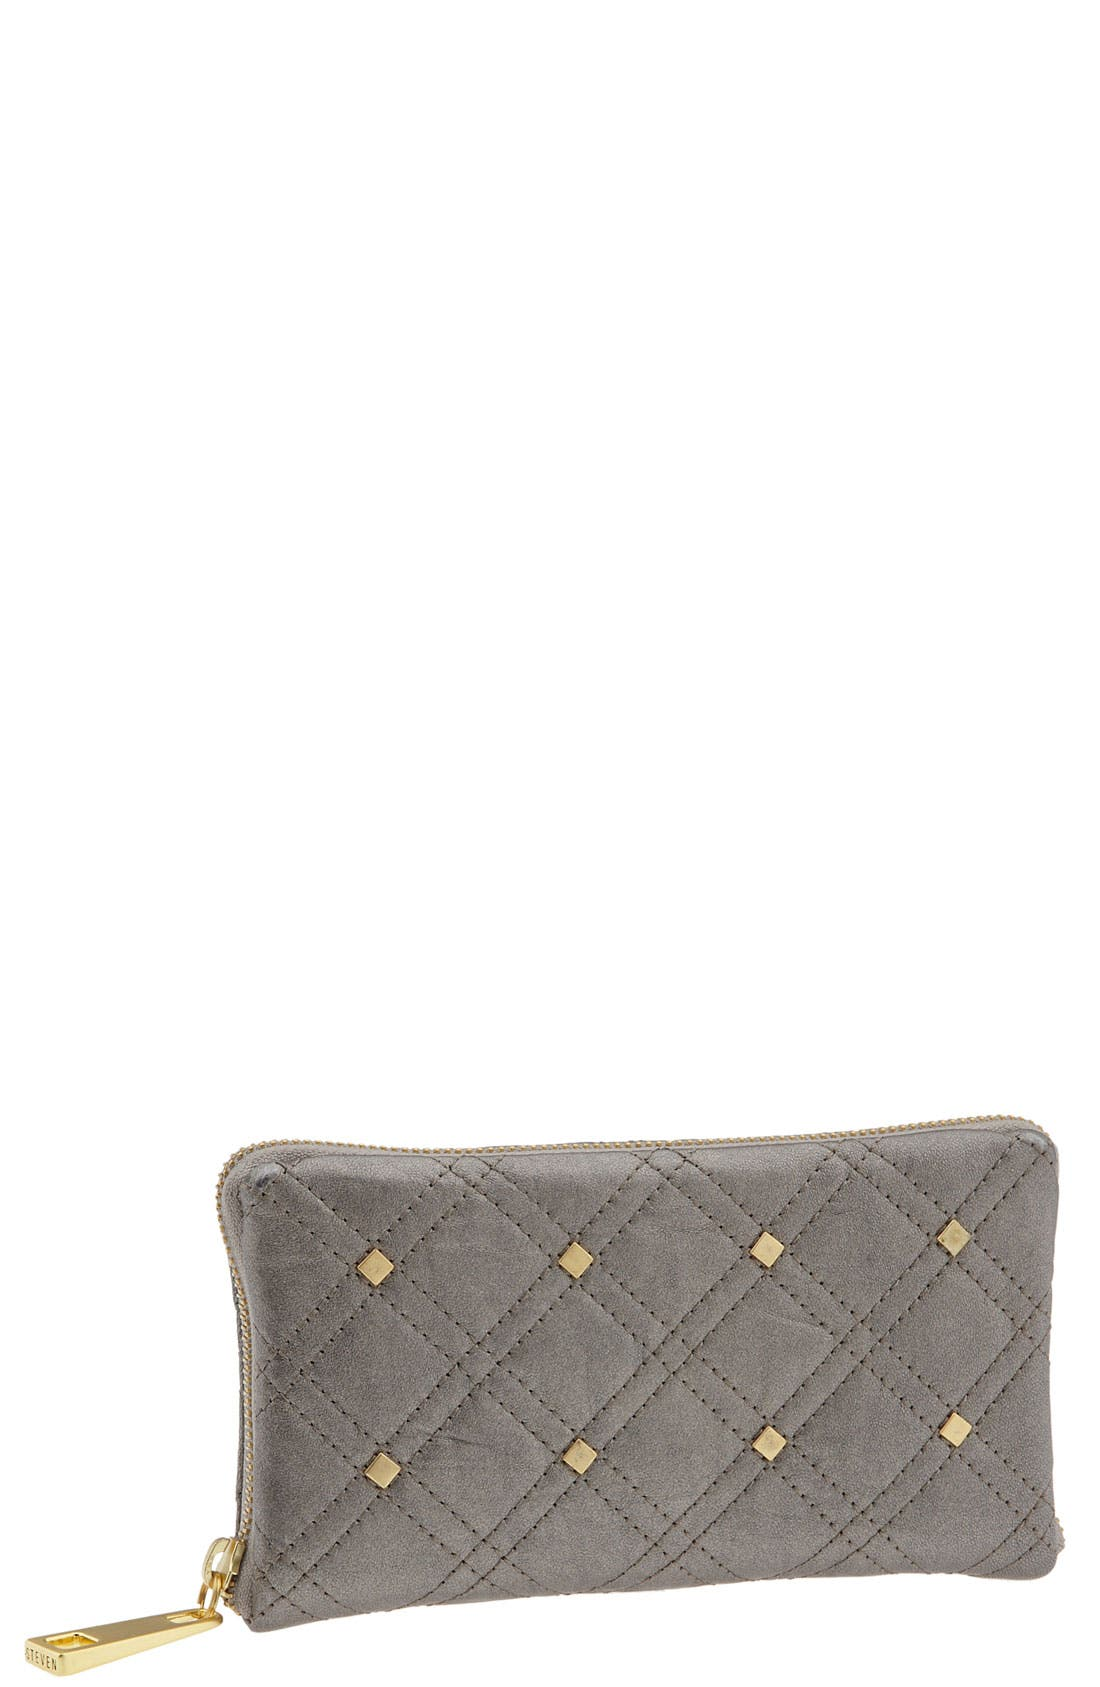 Main Image - Steven by Steve Madden Quilted Zip Around Wallet